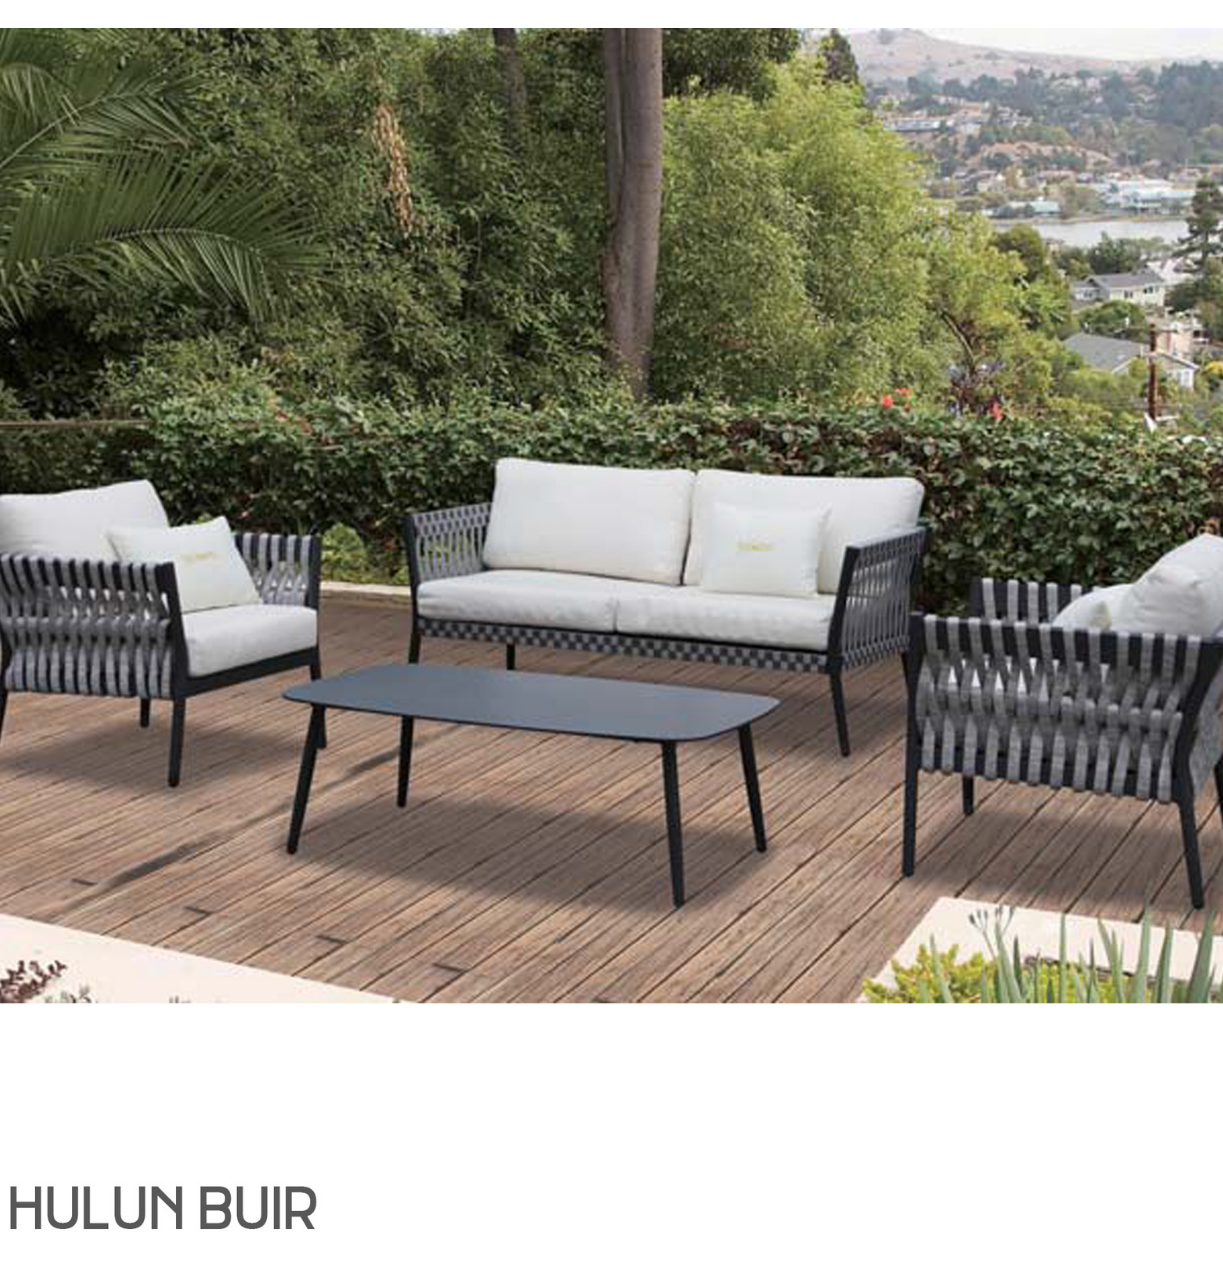 Hulun Buir Sofa Collection-Maison Bertet Online